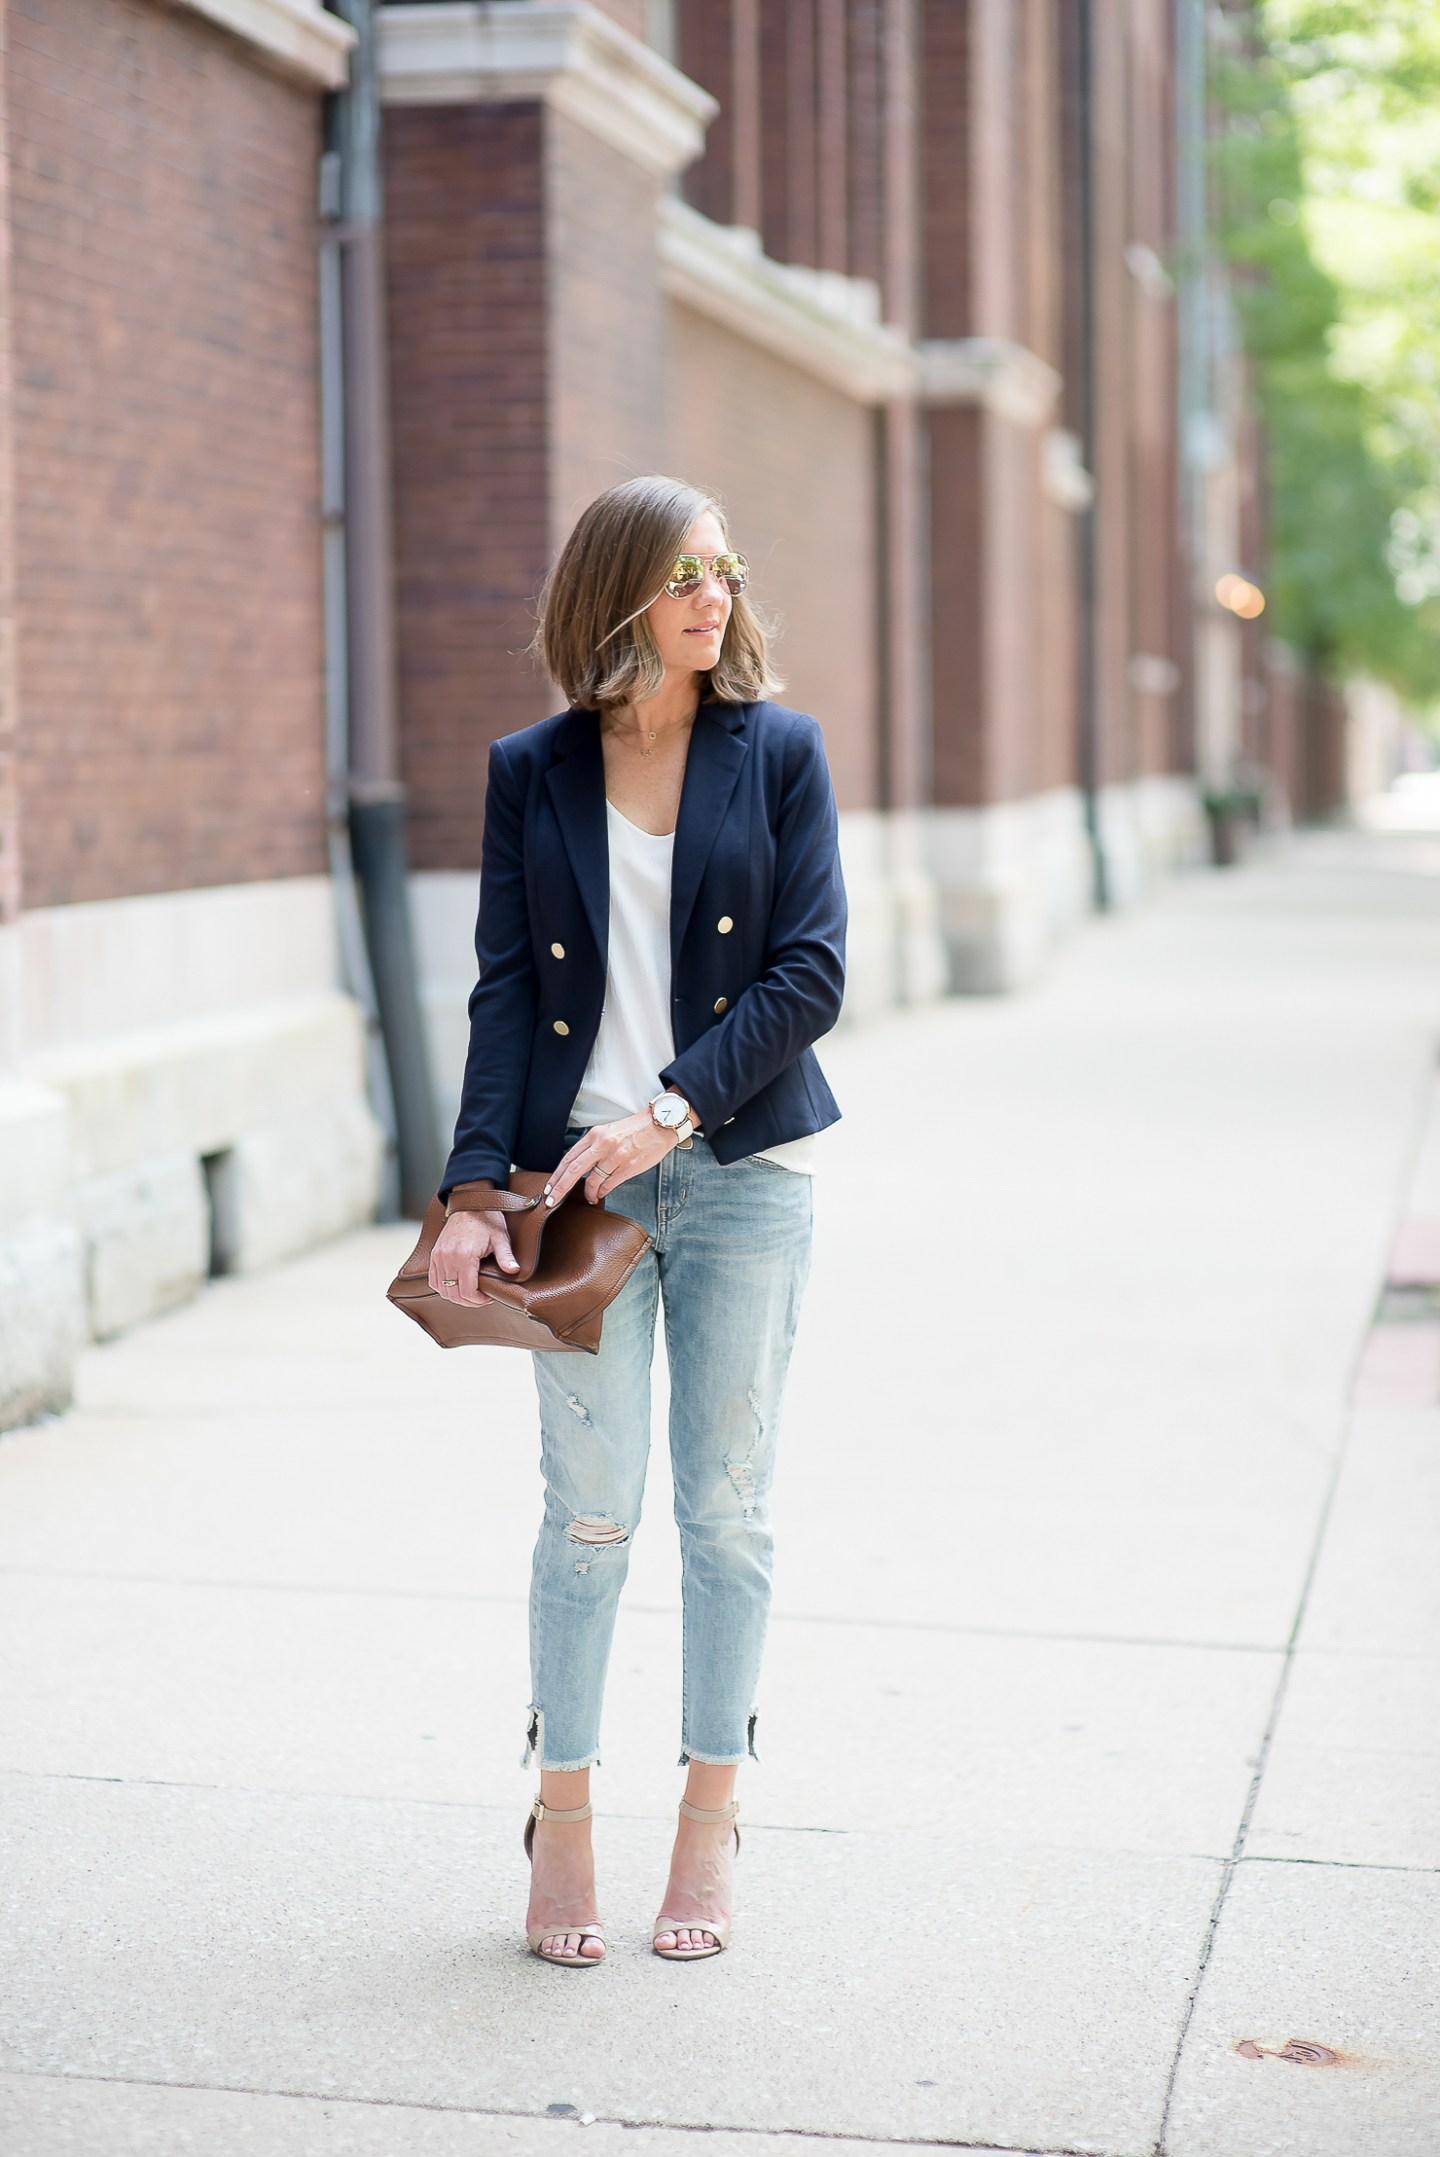 A Year in Review: My Favorite Outfits of 2016, casual fall jeans and blazer outfit